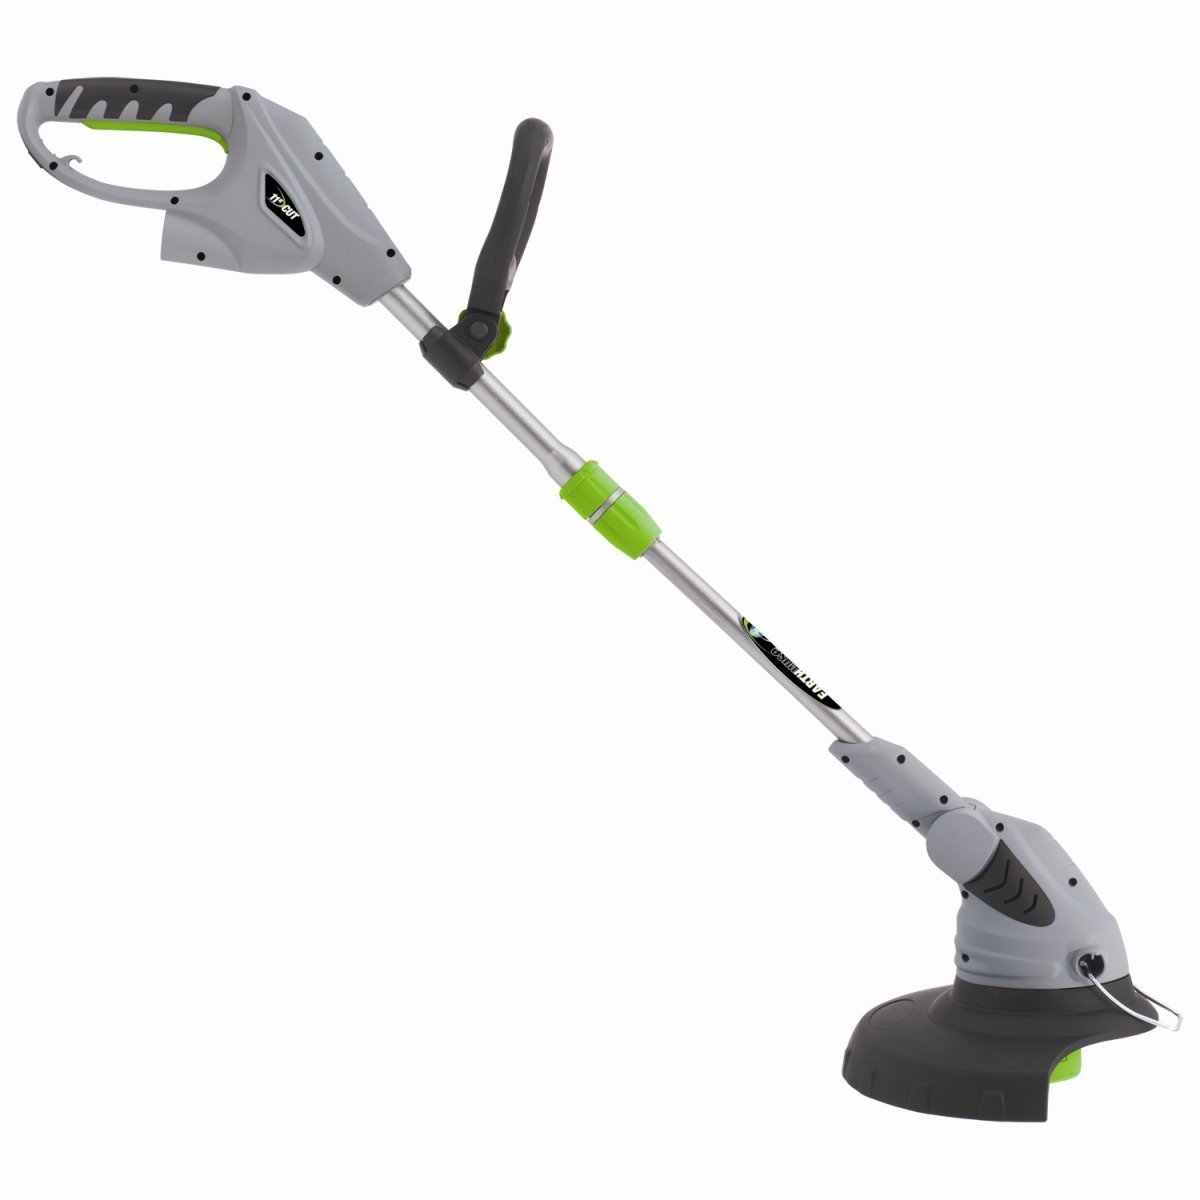 Earthwise ST00013 13-Inch 4.5-Amp Electric String Trimmer